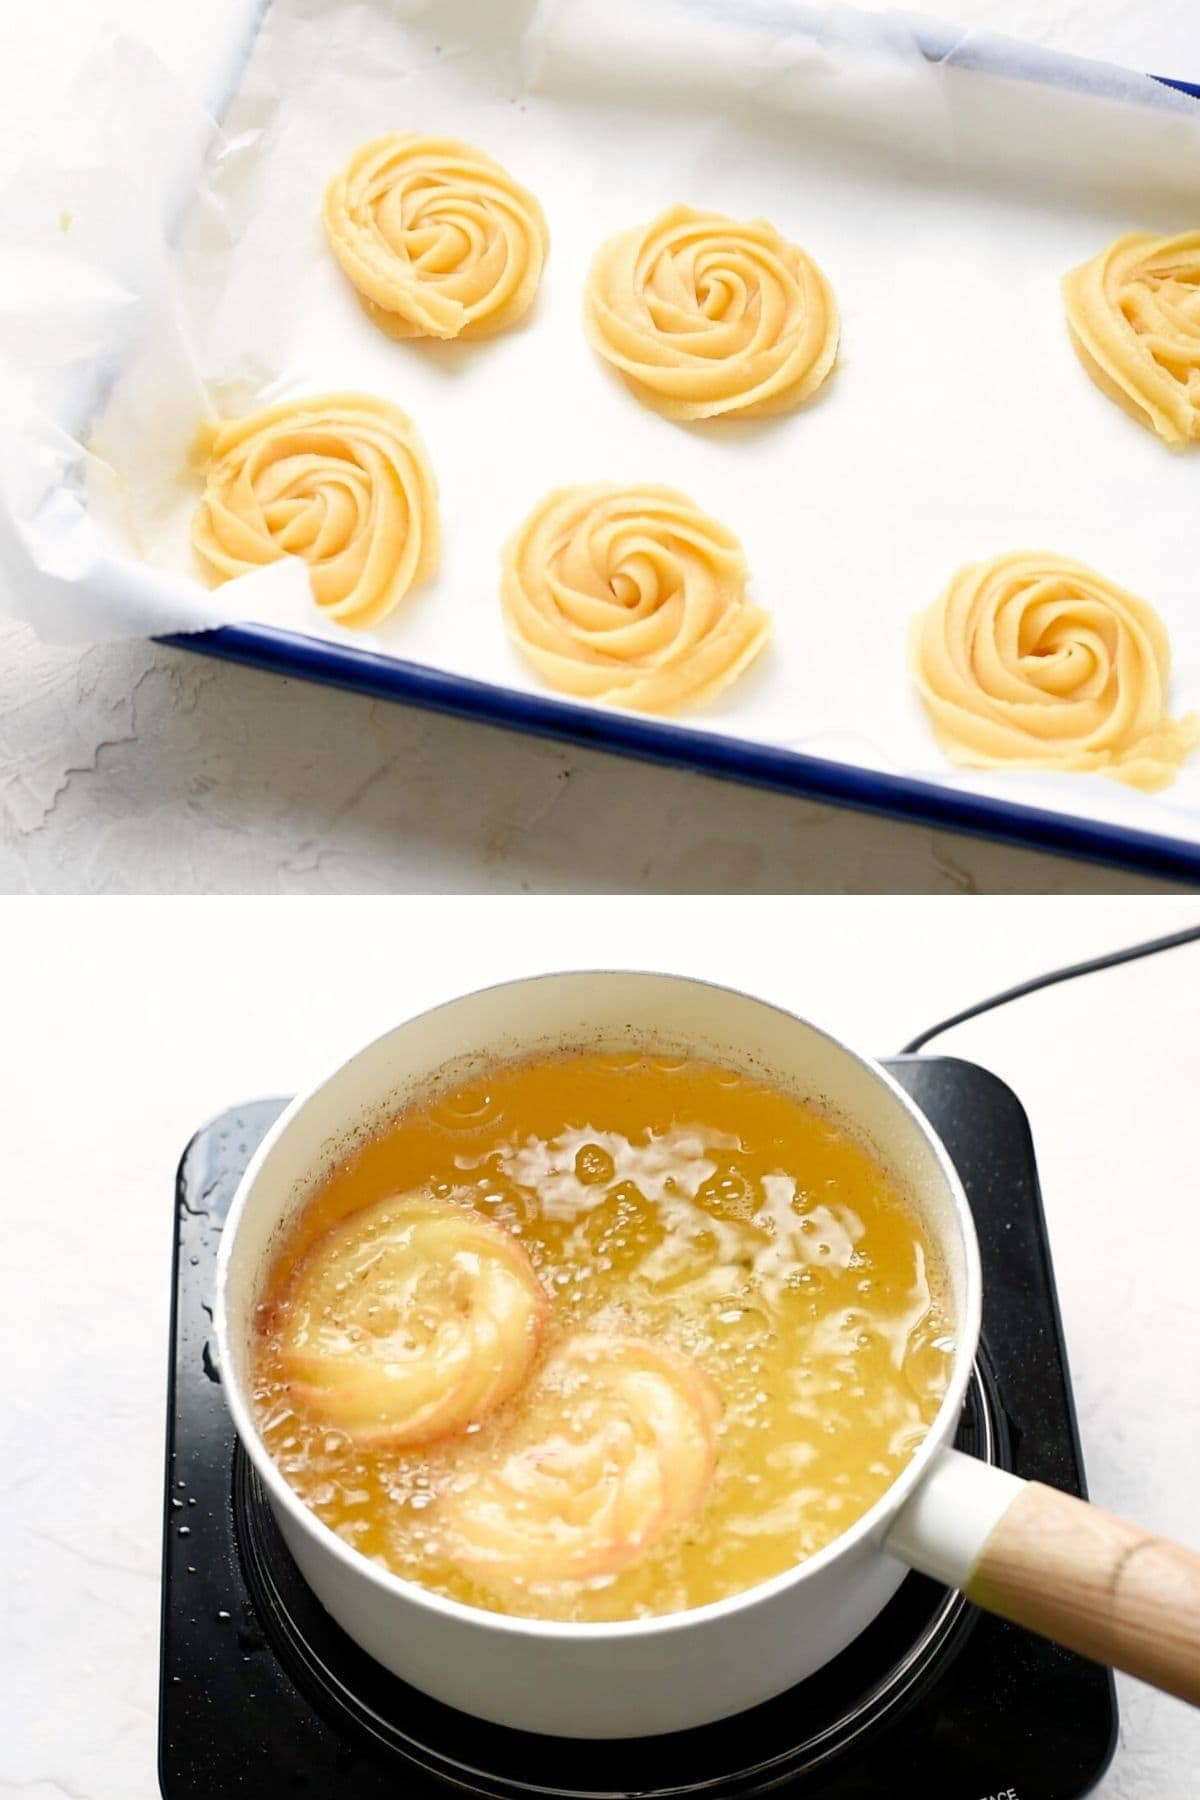 piping churros and frying them